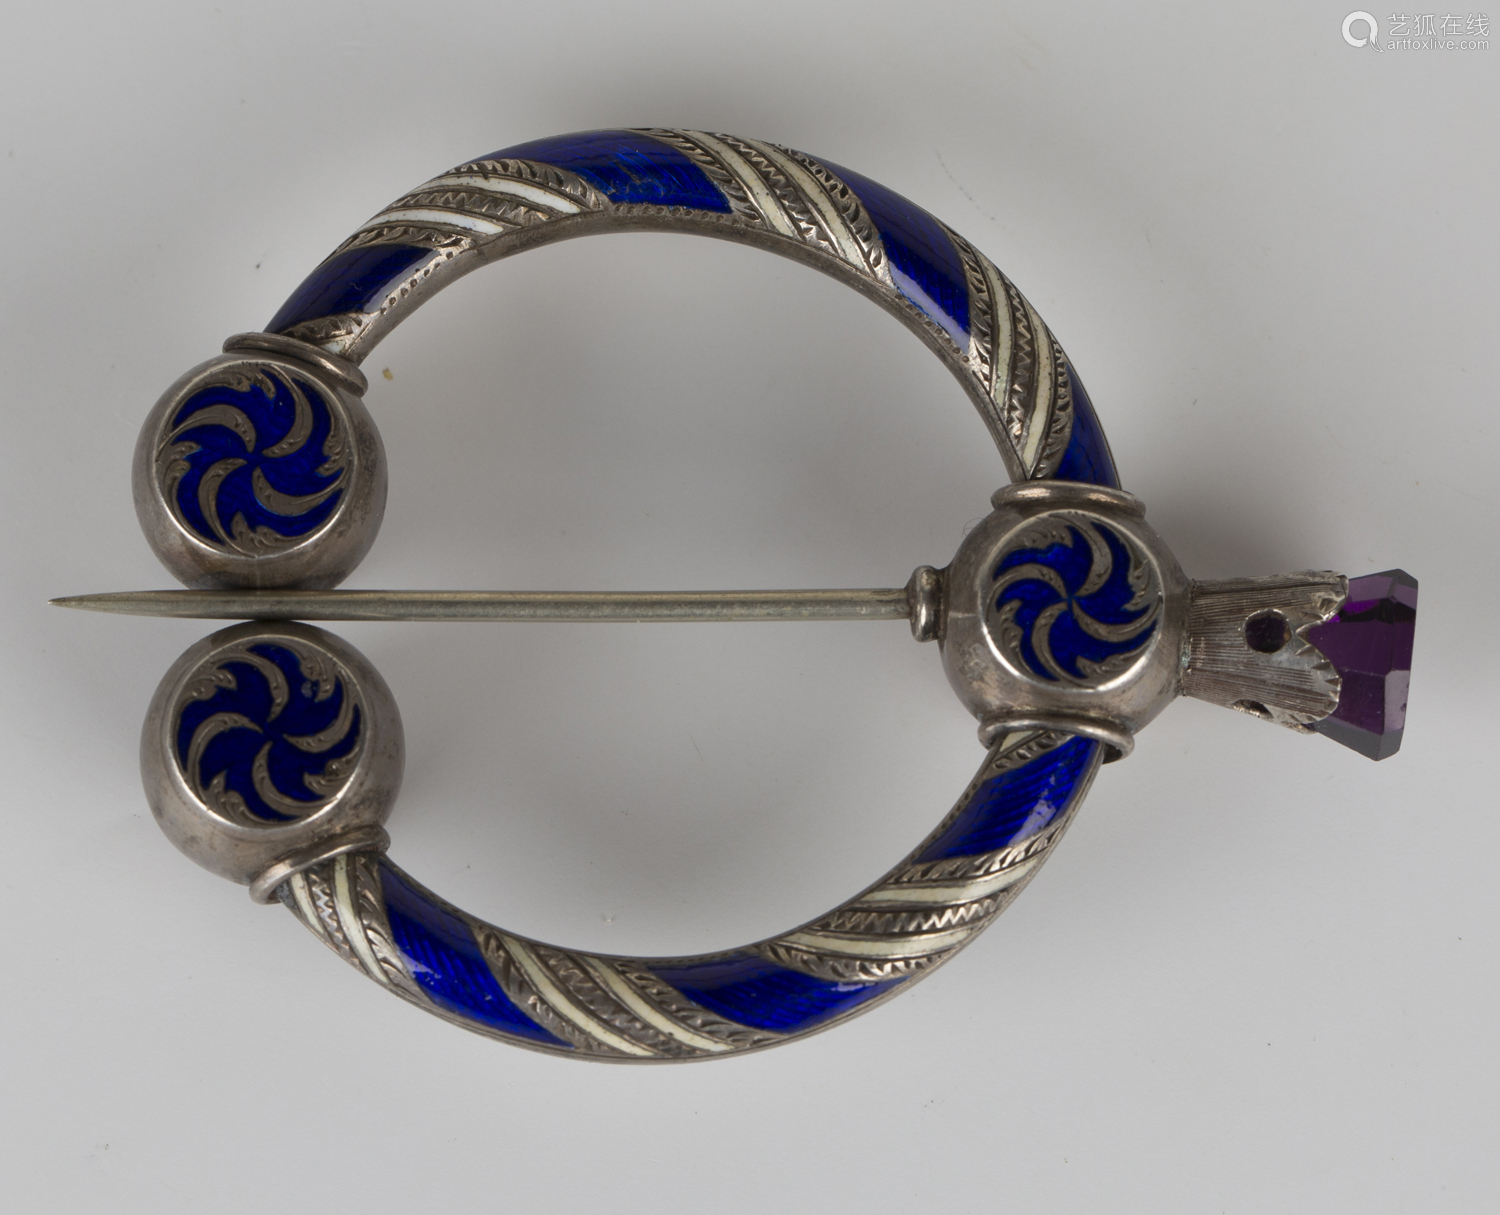 A Victorian silver, blue and white enamelled and coloured foil backed gem set brooch, probably